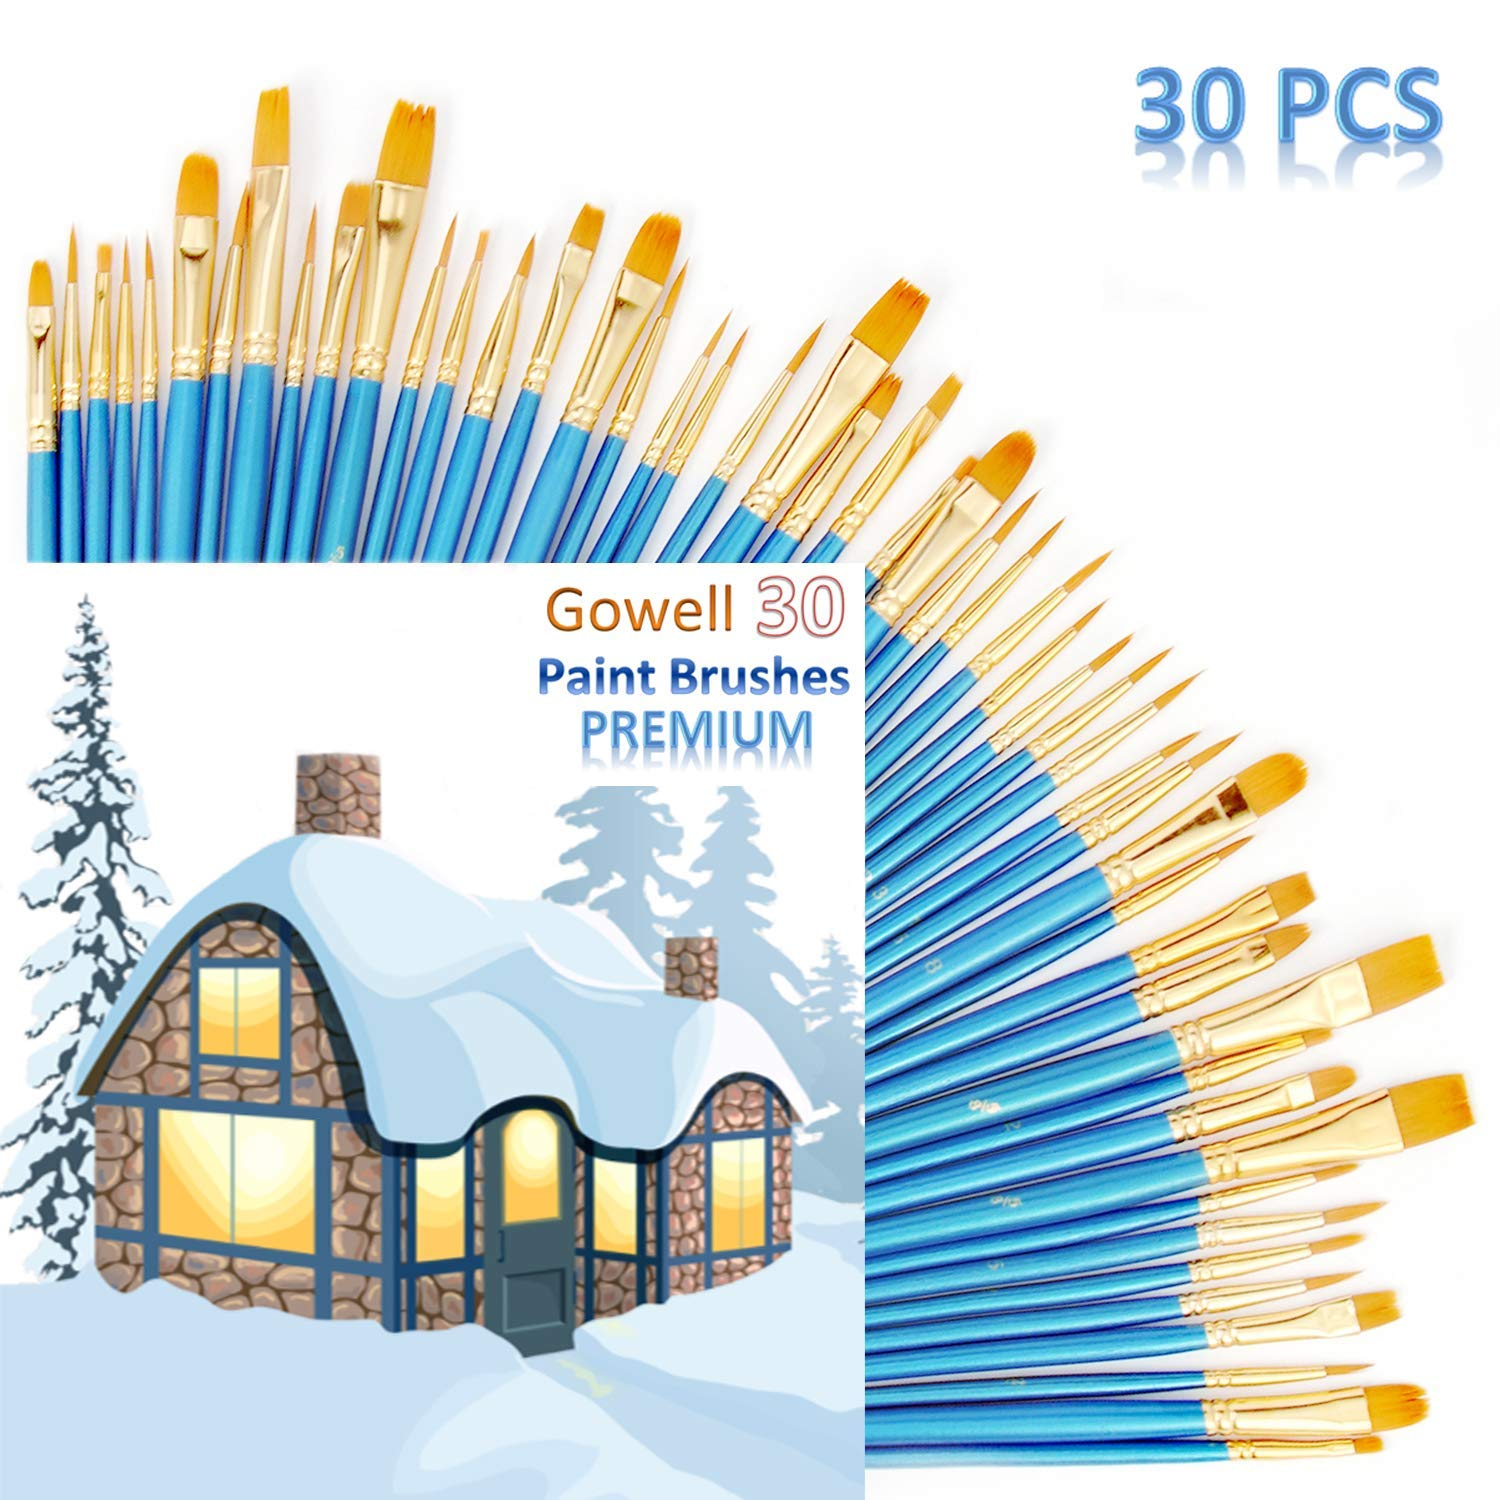 5Packs//50pcs Nylon Hair Brushes for All Purpose Oil Watercolor Craft Paint Brushes for Acrylics Painting Artist Professional Kits Acrylic Paint Brushes,